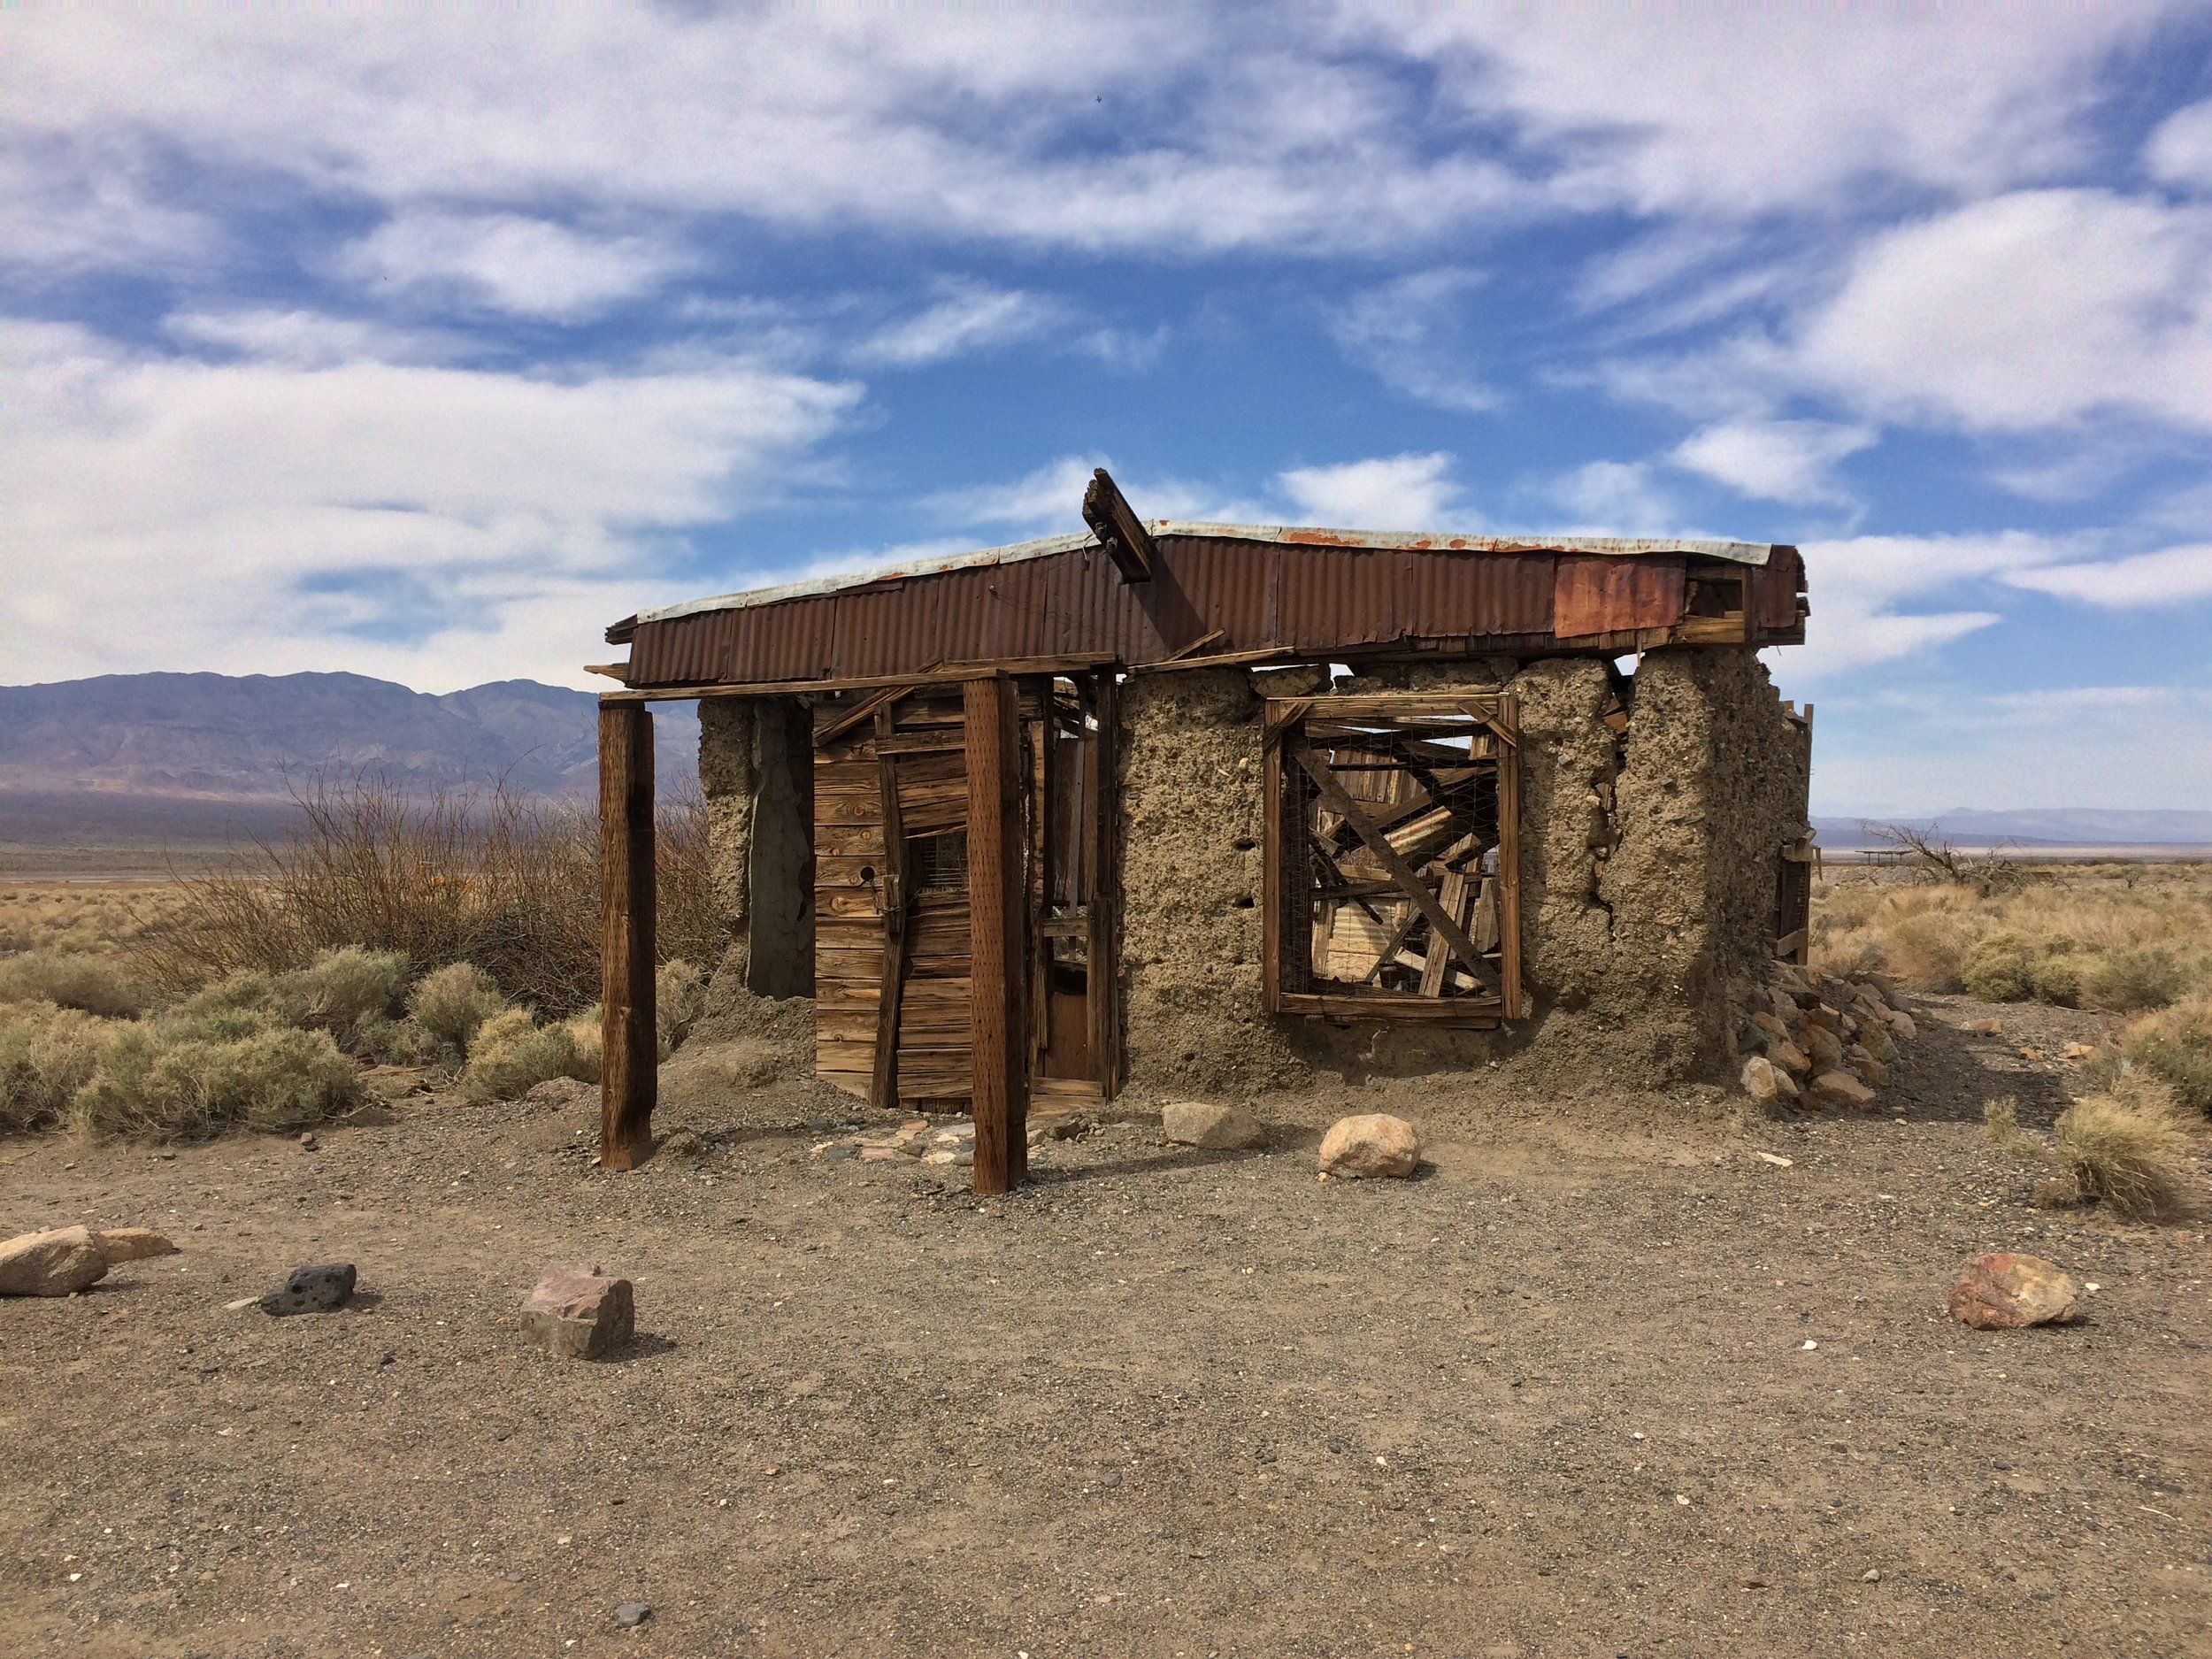 """Ballarat. Although technically not in """"Death Valley"""", the ghost town of Ballarat is an interesting spot to visit in the nearby Searles Valley."""